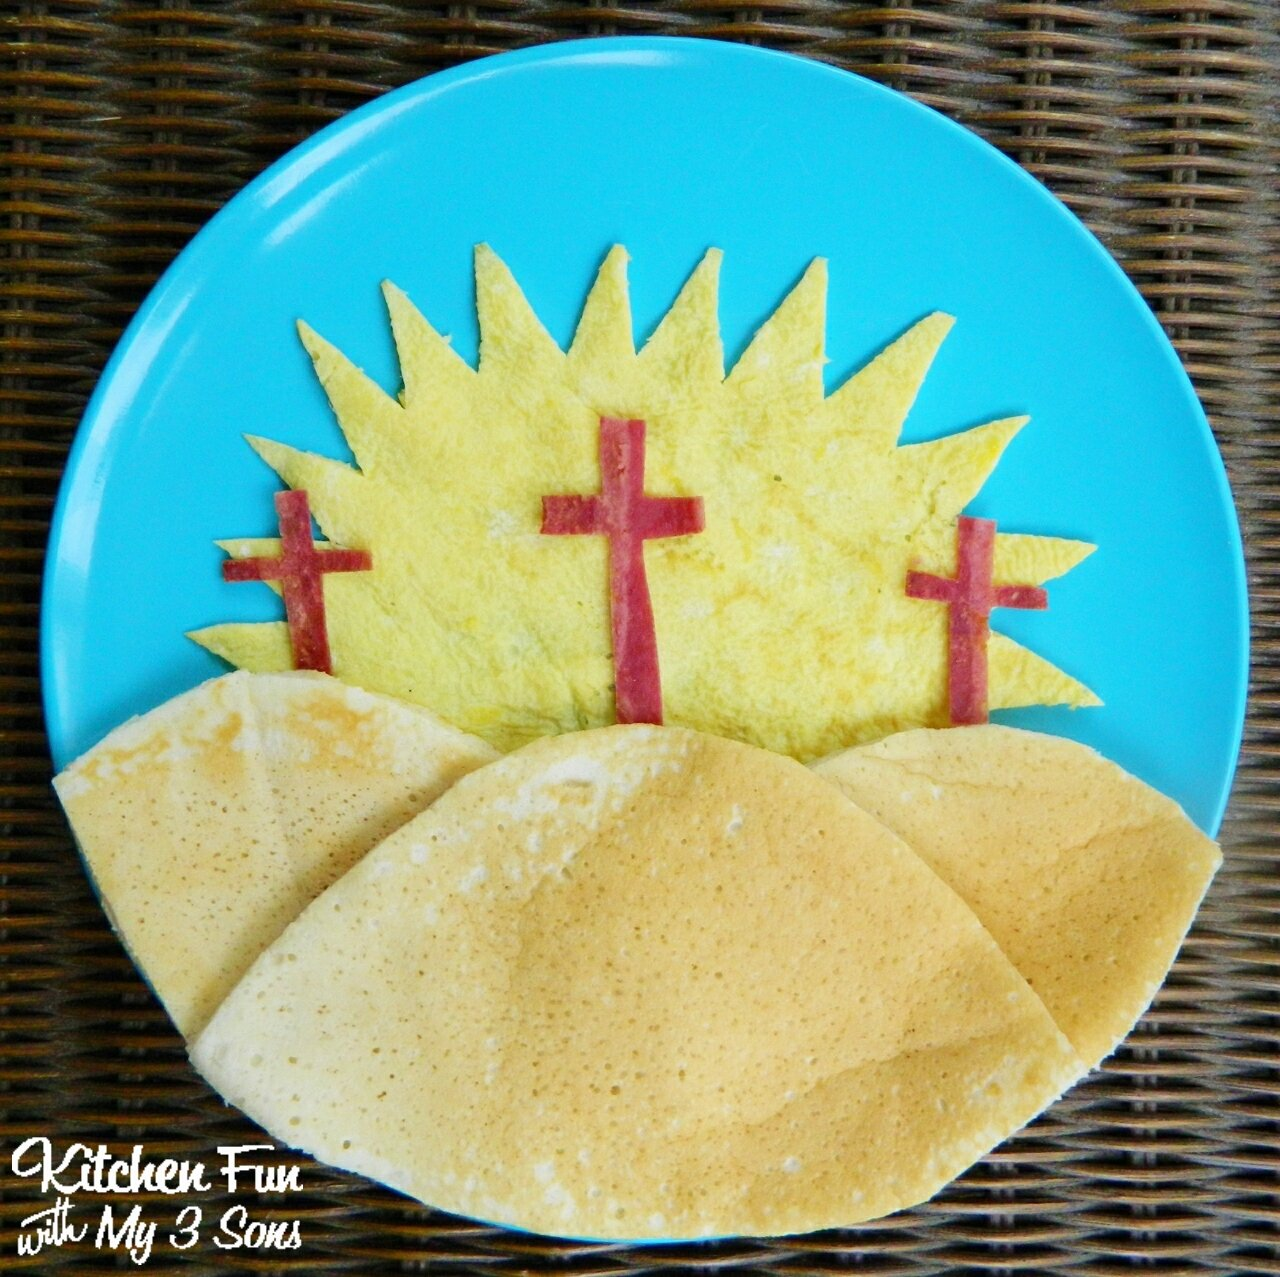 Kitchen Fun And Crafty Friday Link Party 167: Good Friday Easter Breakfast